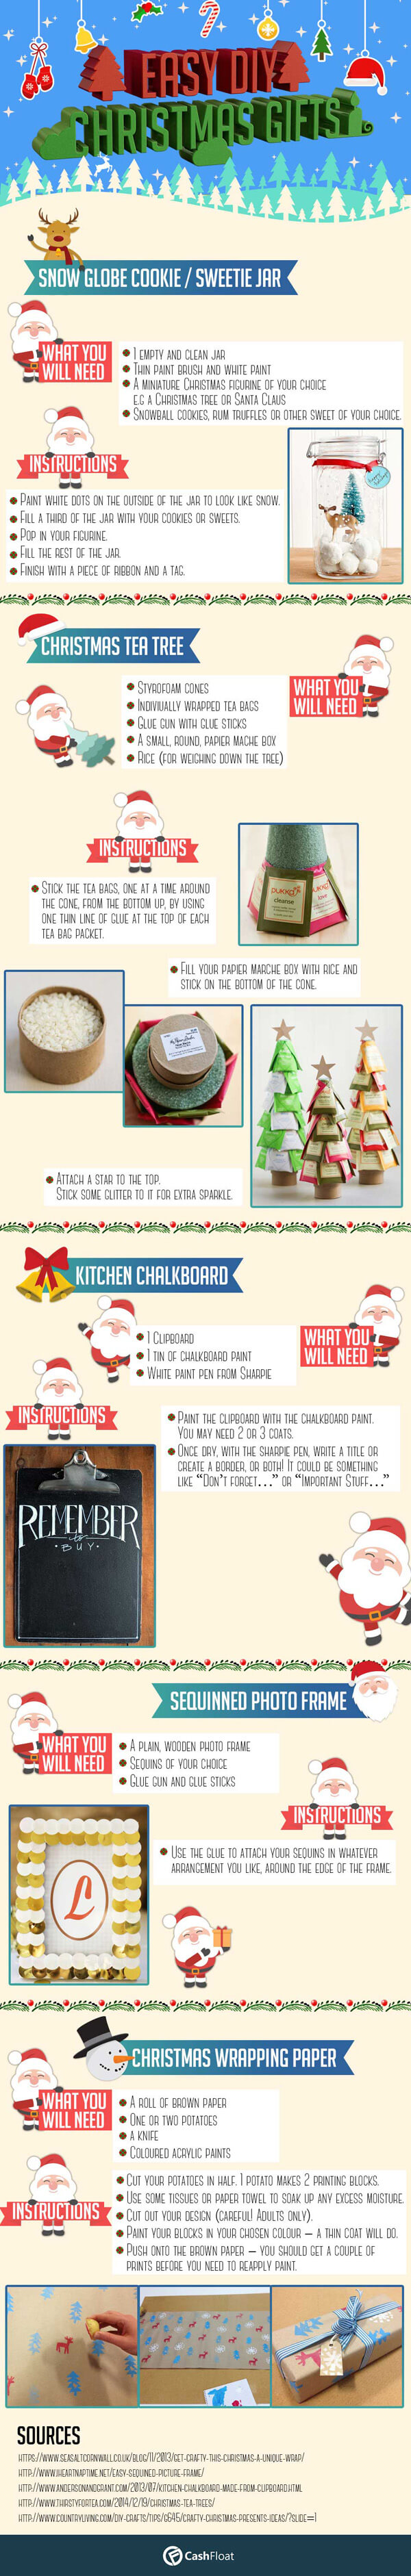 do-it-yourself-xmas-amazing-gifts-infographic